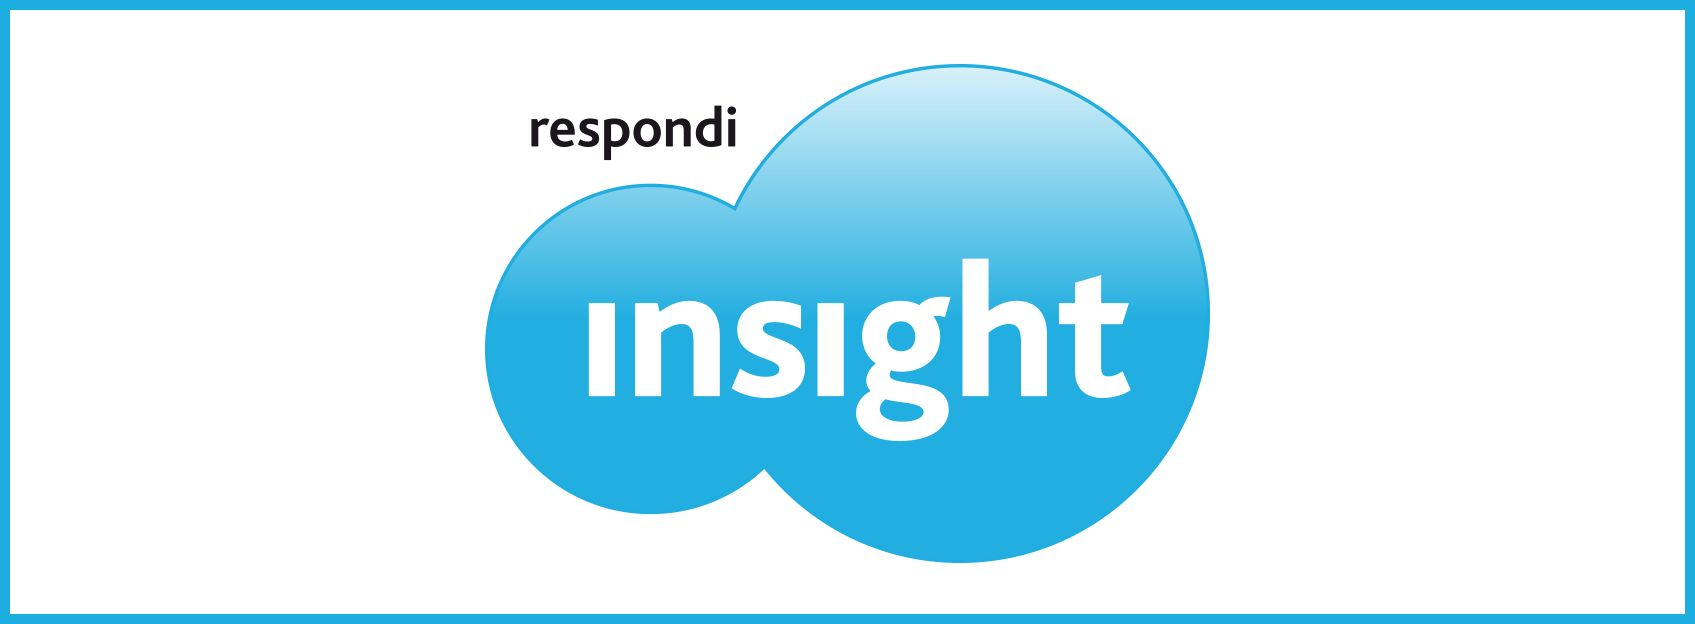 respondi launches improved Insight Community 2.0 for more far-reaching research